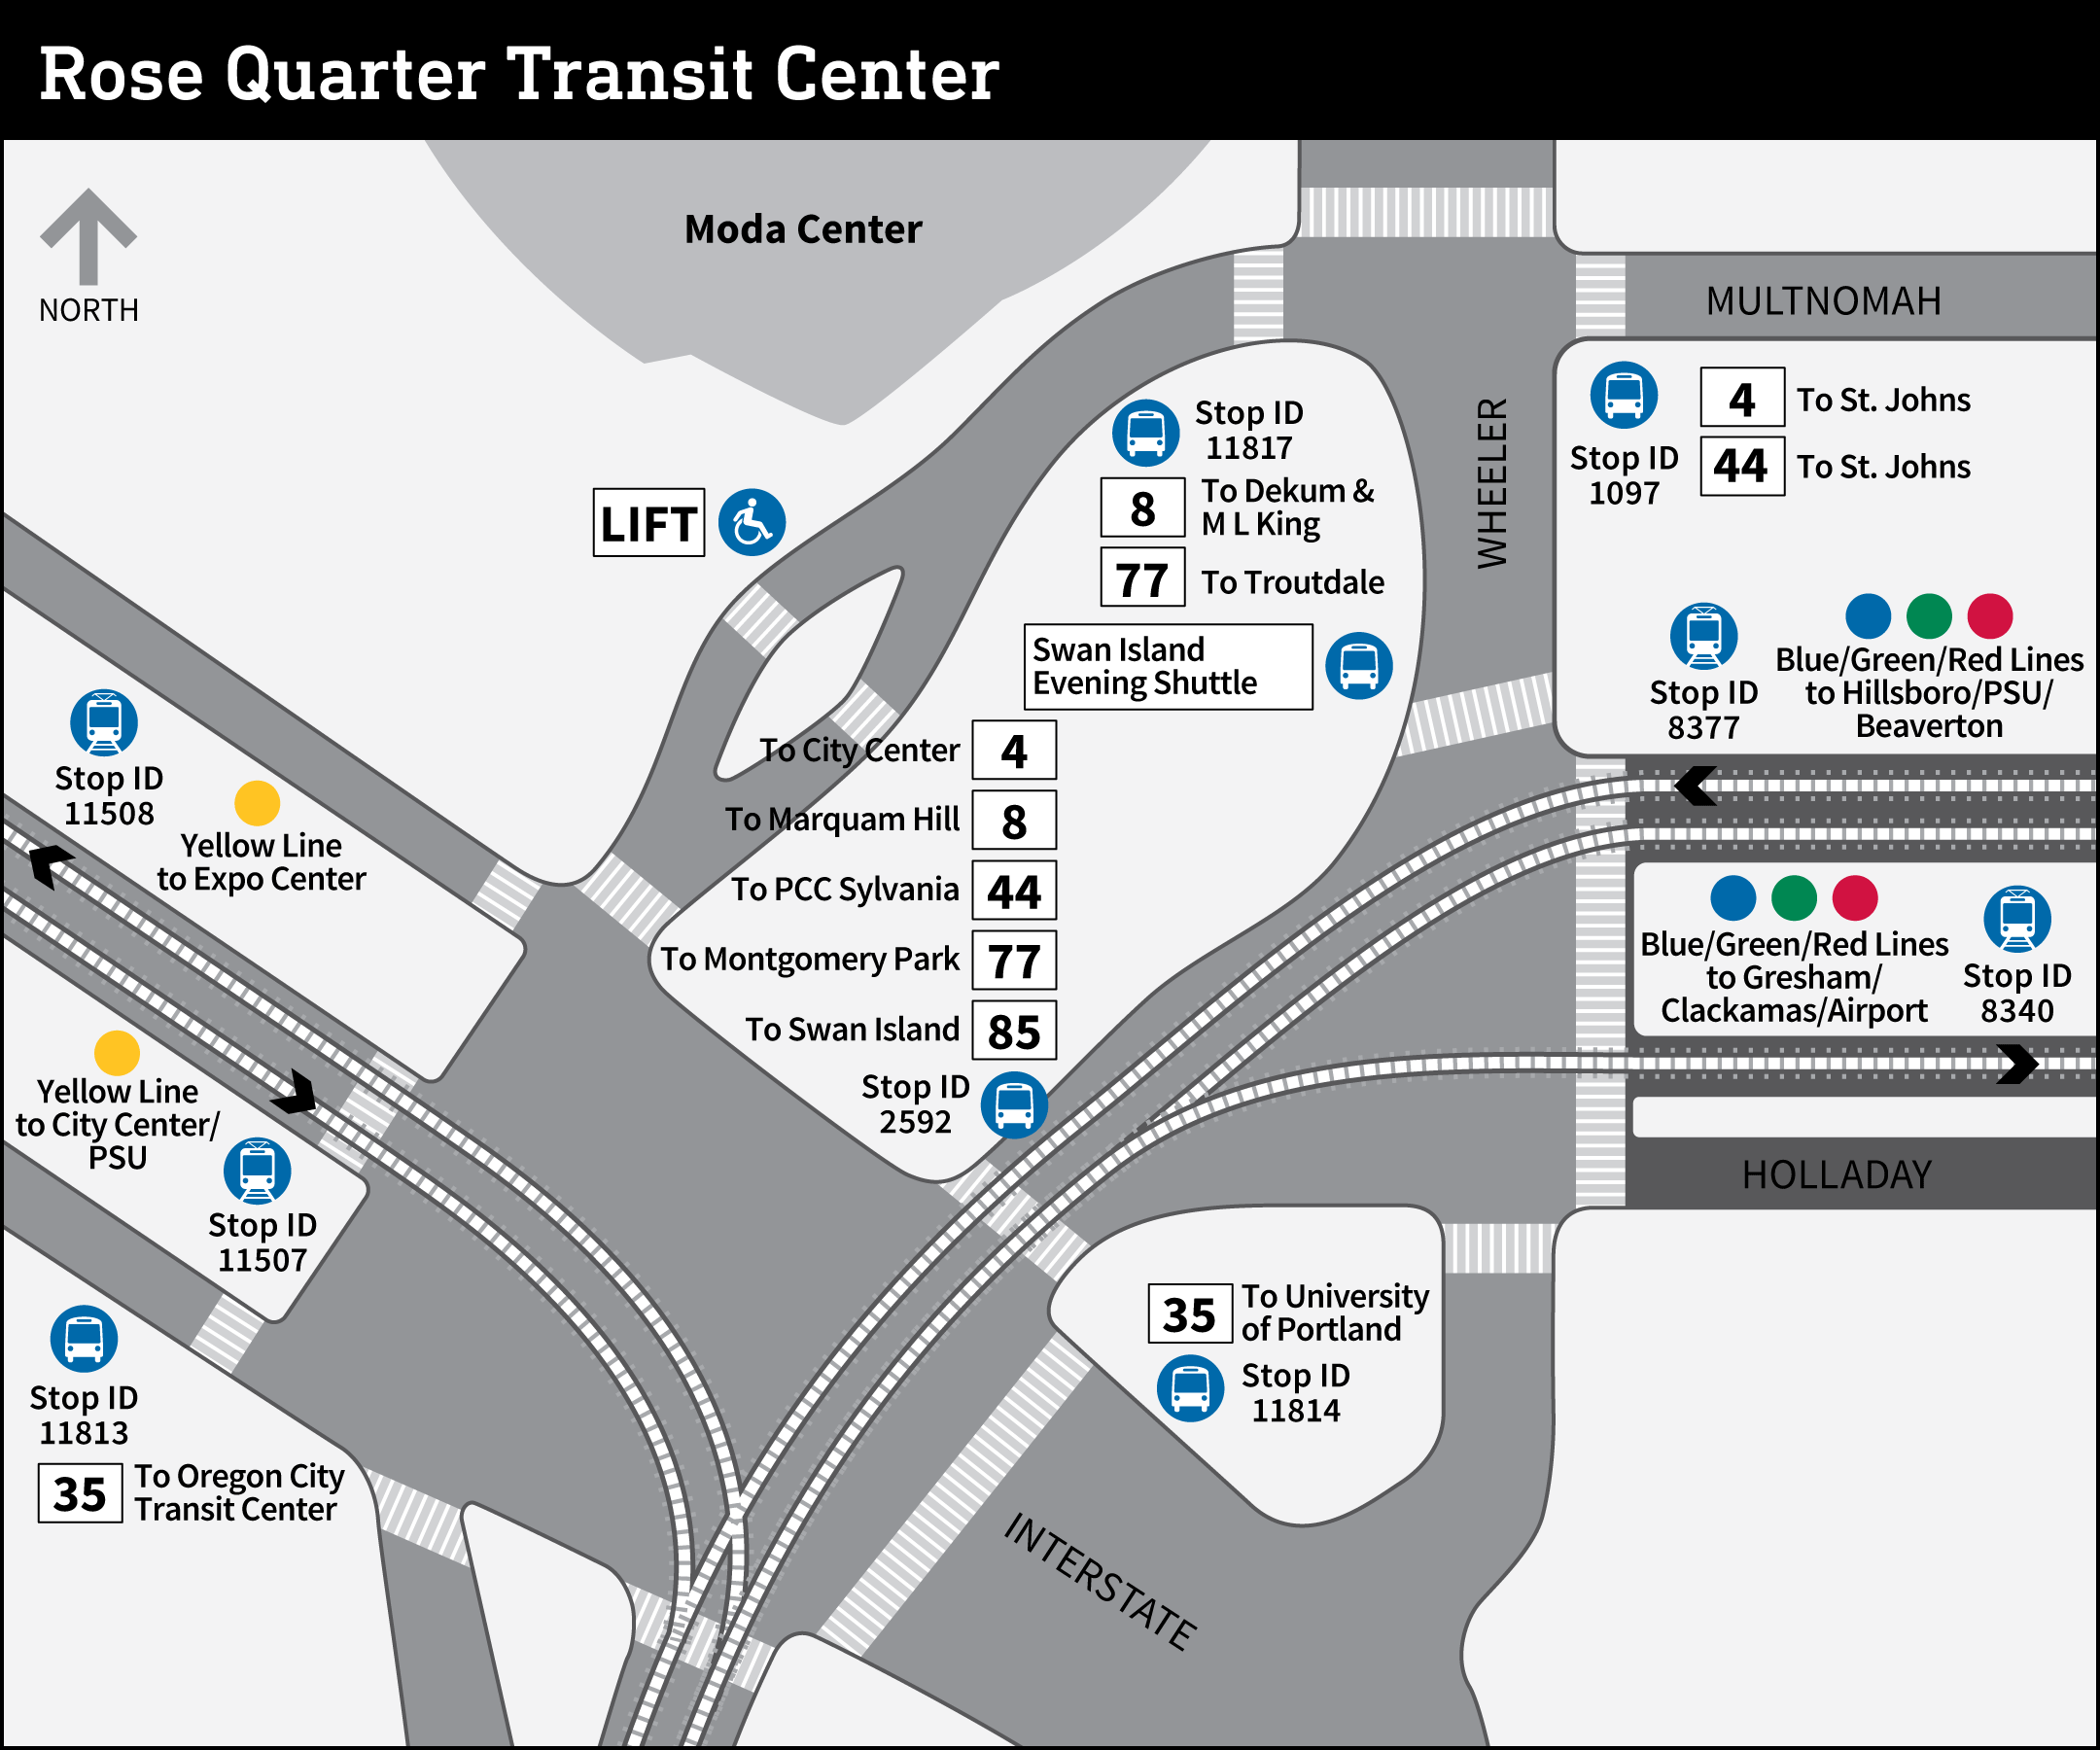 Rose Quarter Transit Center